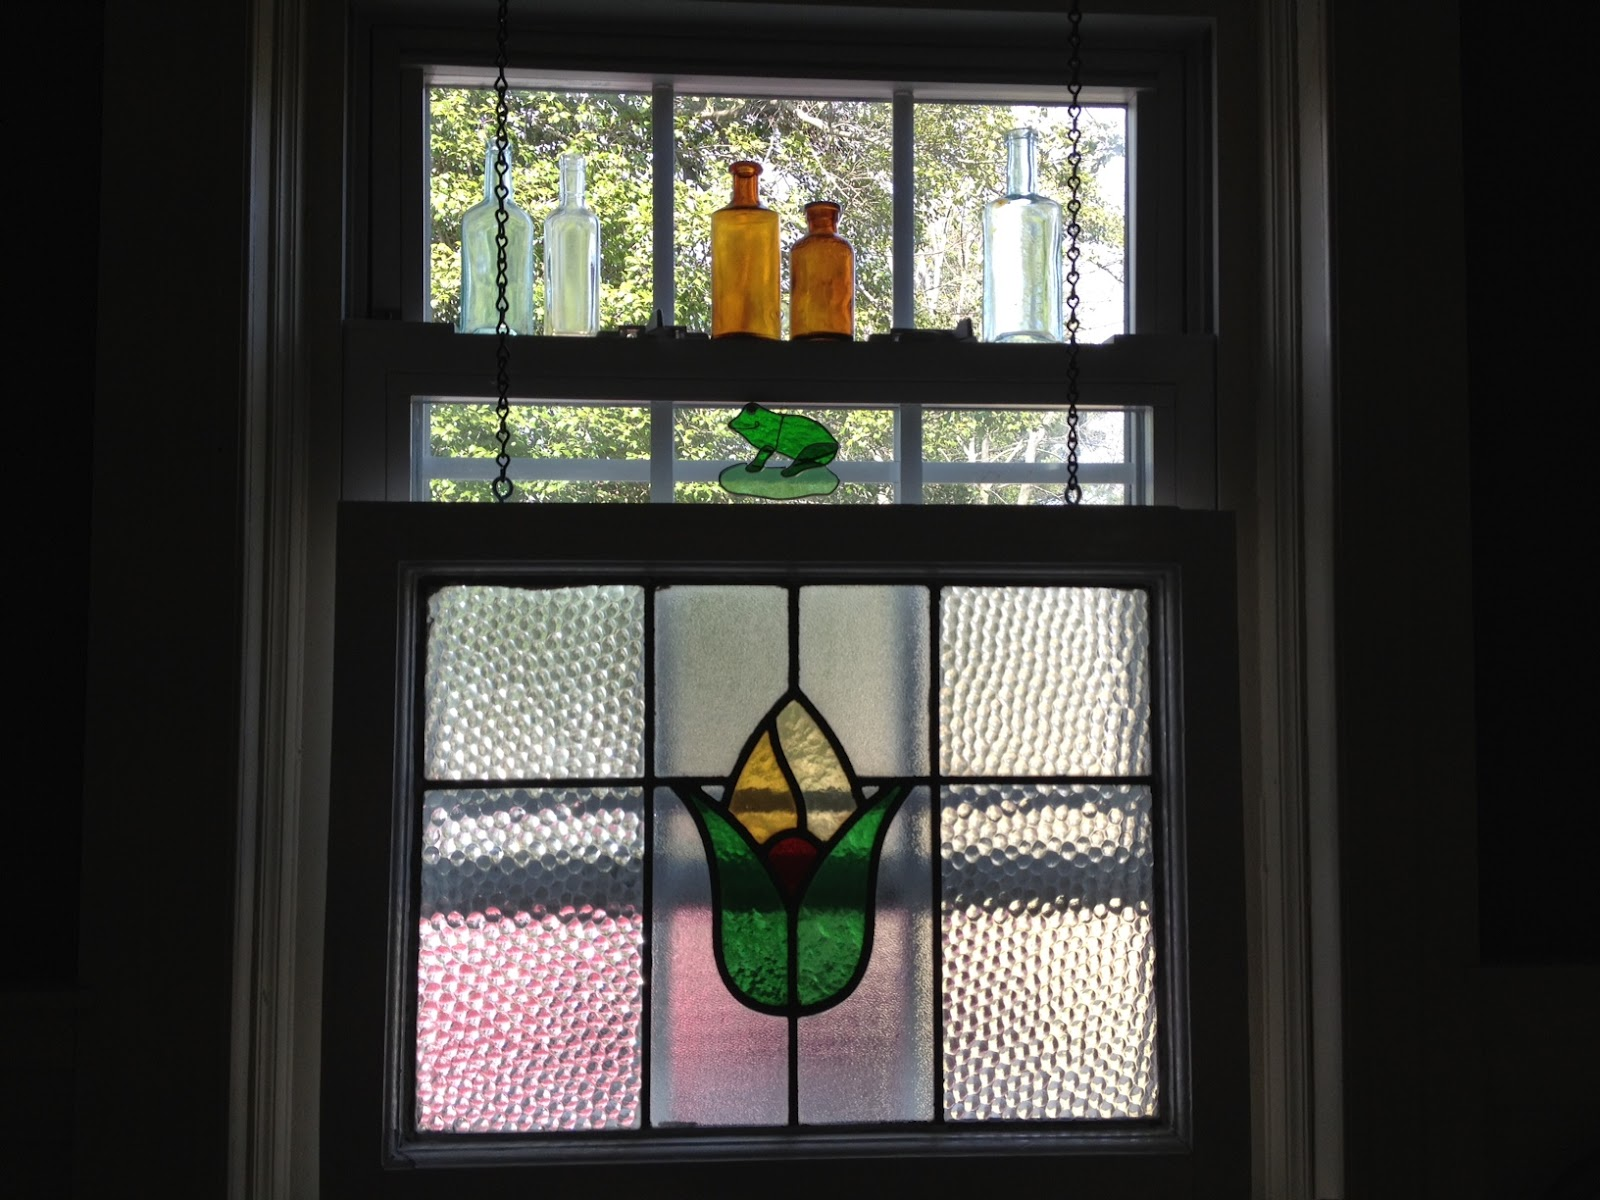 Tales from a sears house windows on the world for Stained glass kitchen windows